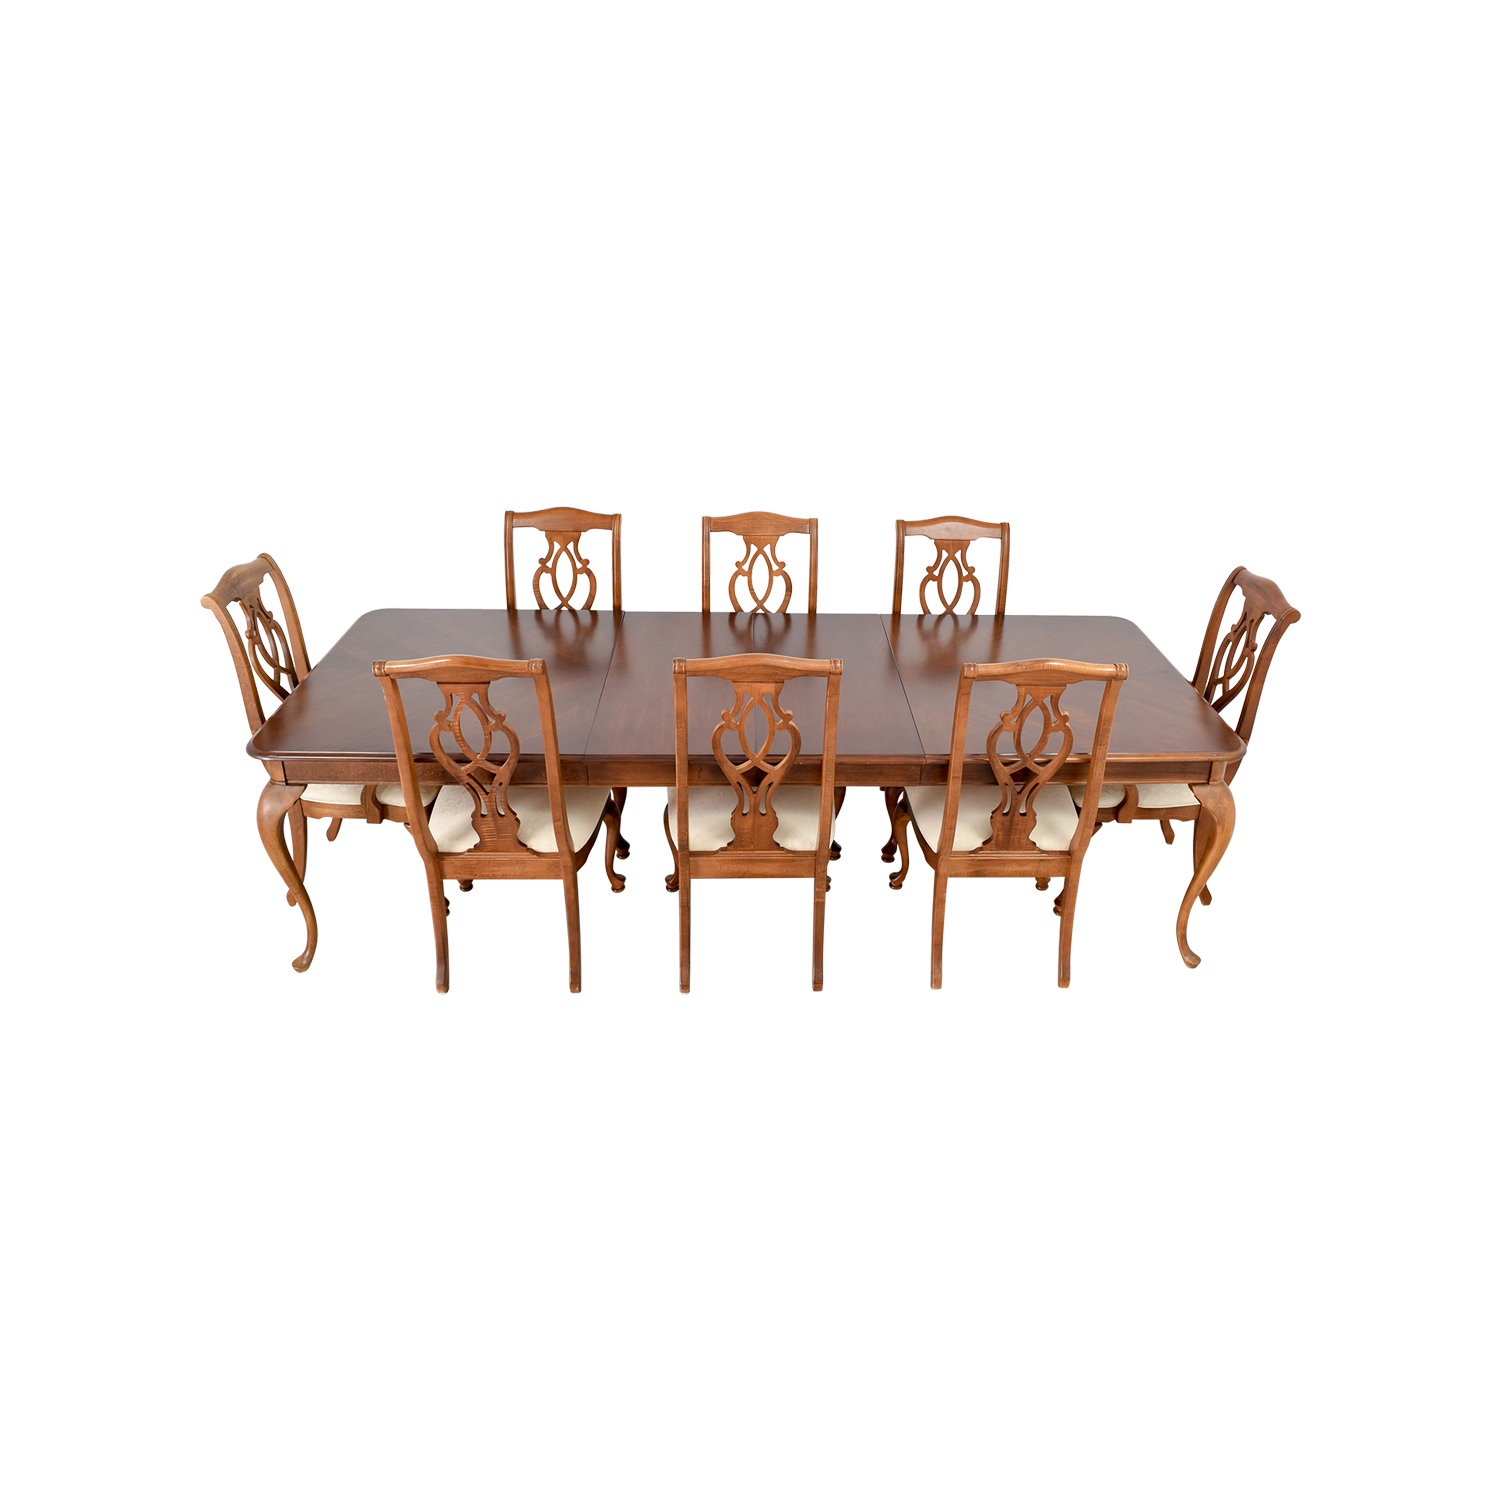 49% OFF American Drew American Drew Dining Table Set Tables